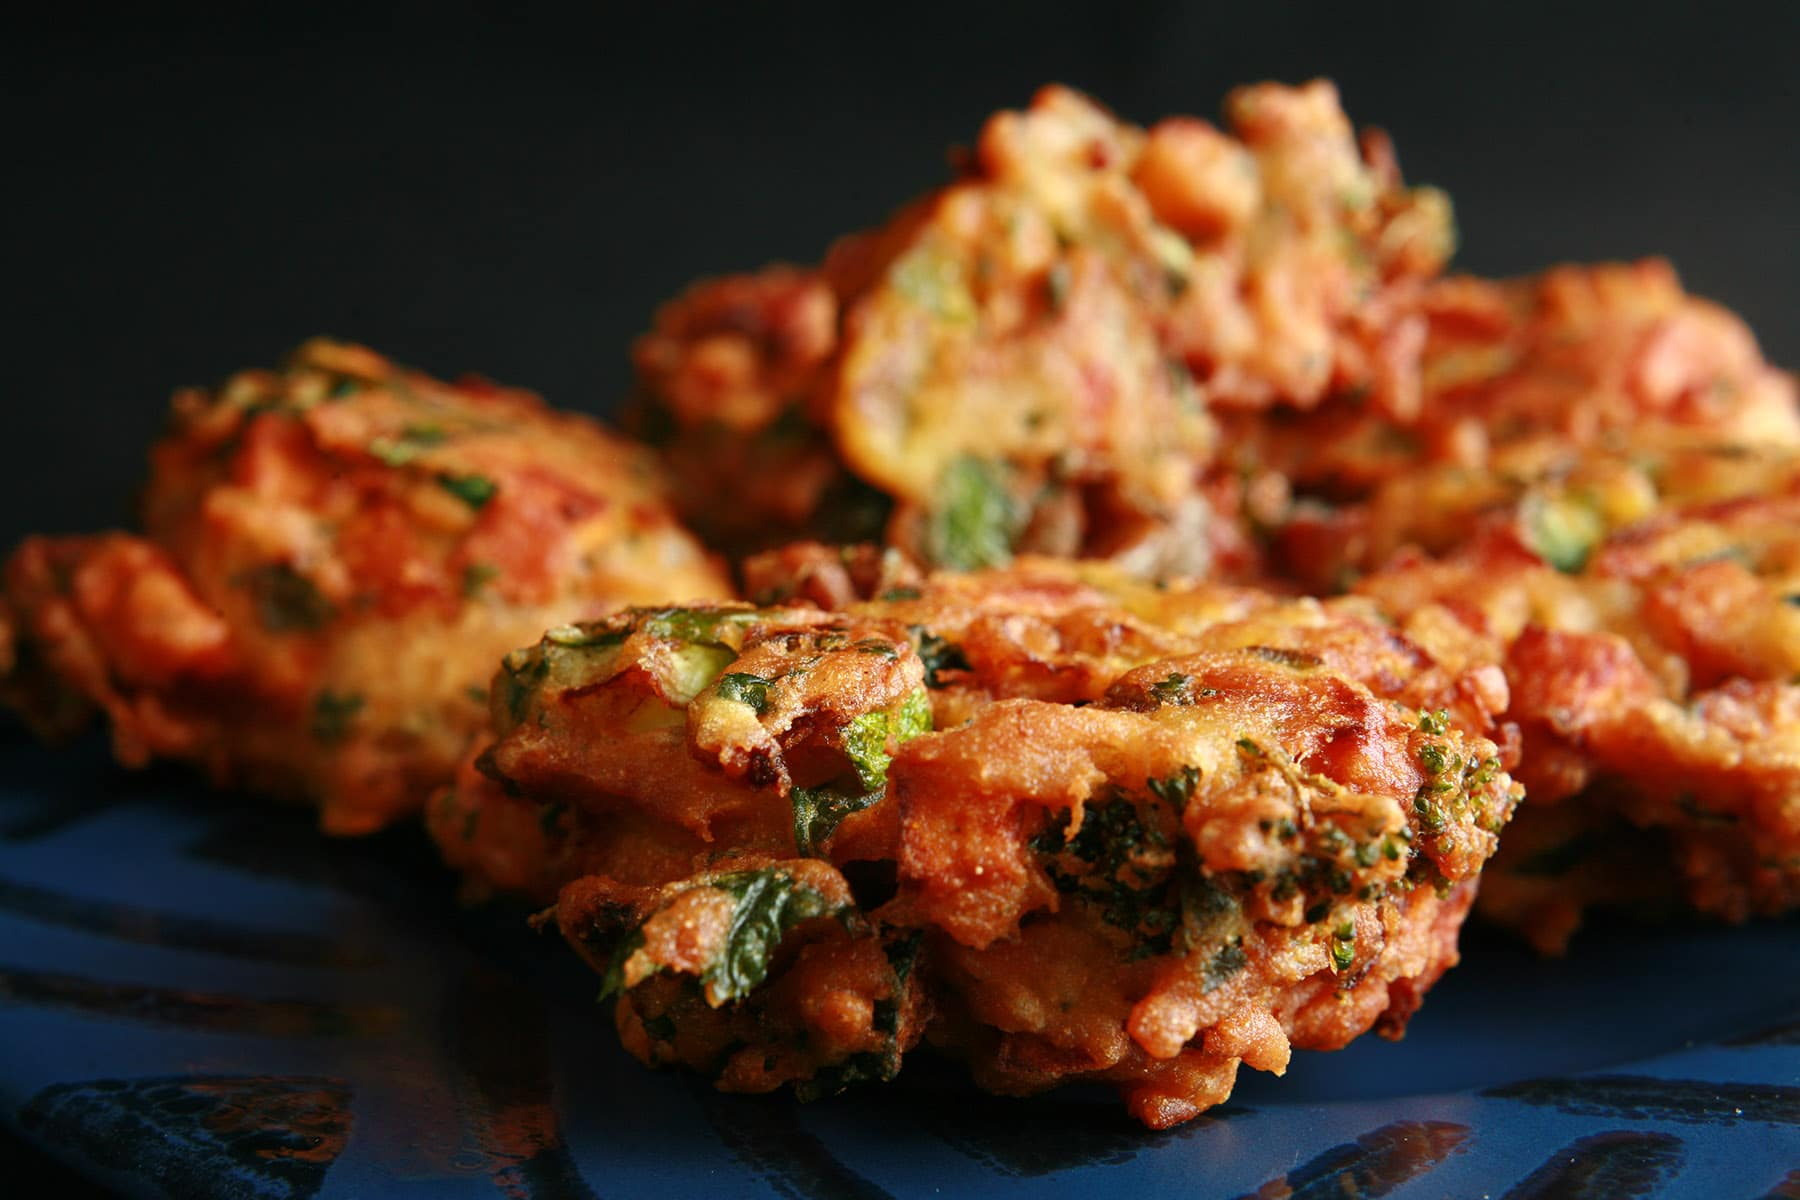 A close up view of mixed vegetable pakora. They are little patties of sweet potatoes, onions, broccoli, cilantro, and more, in a curried batter, deep fried.